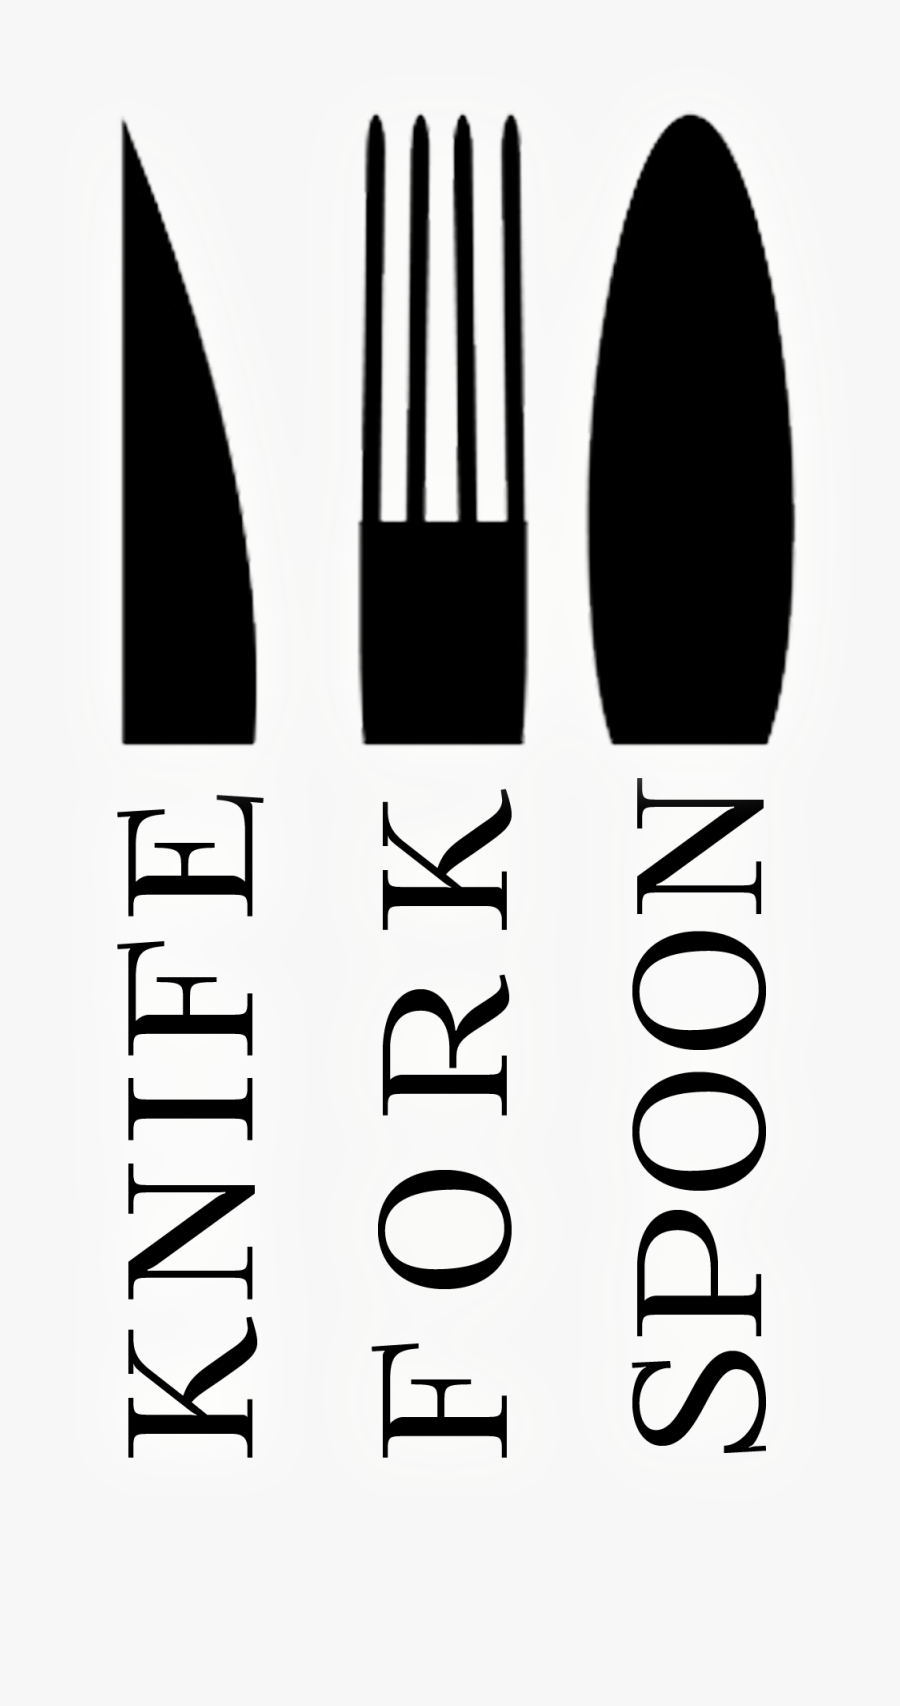 Fork And Spoon And Knife Png - Spoon And Fork Png, Transparent Clipart